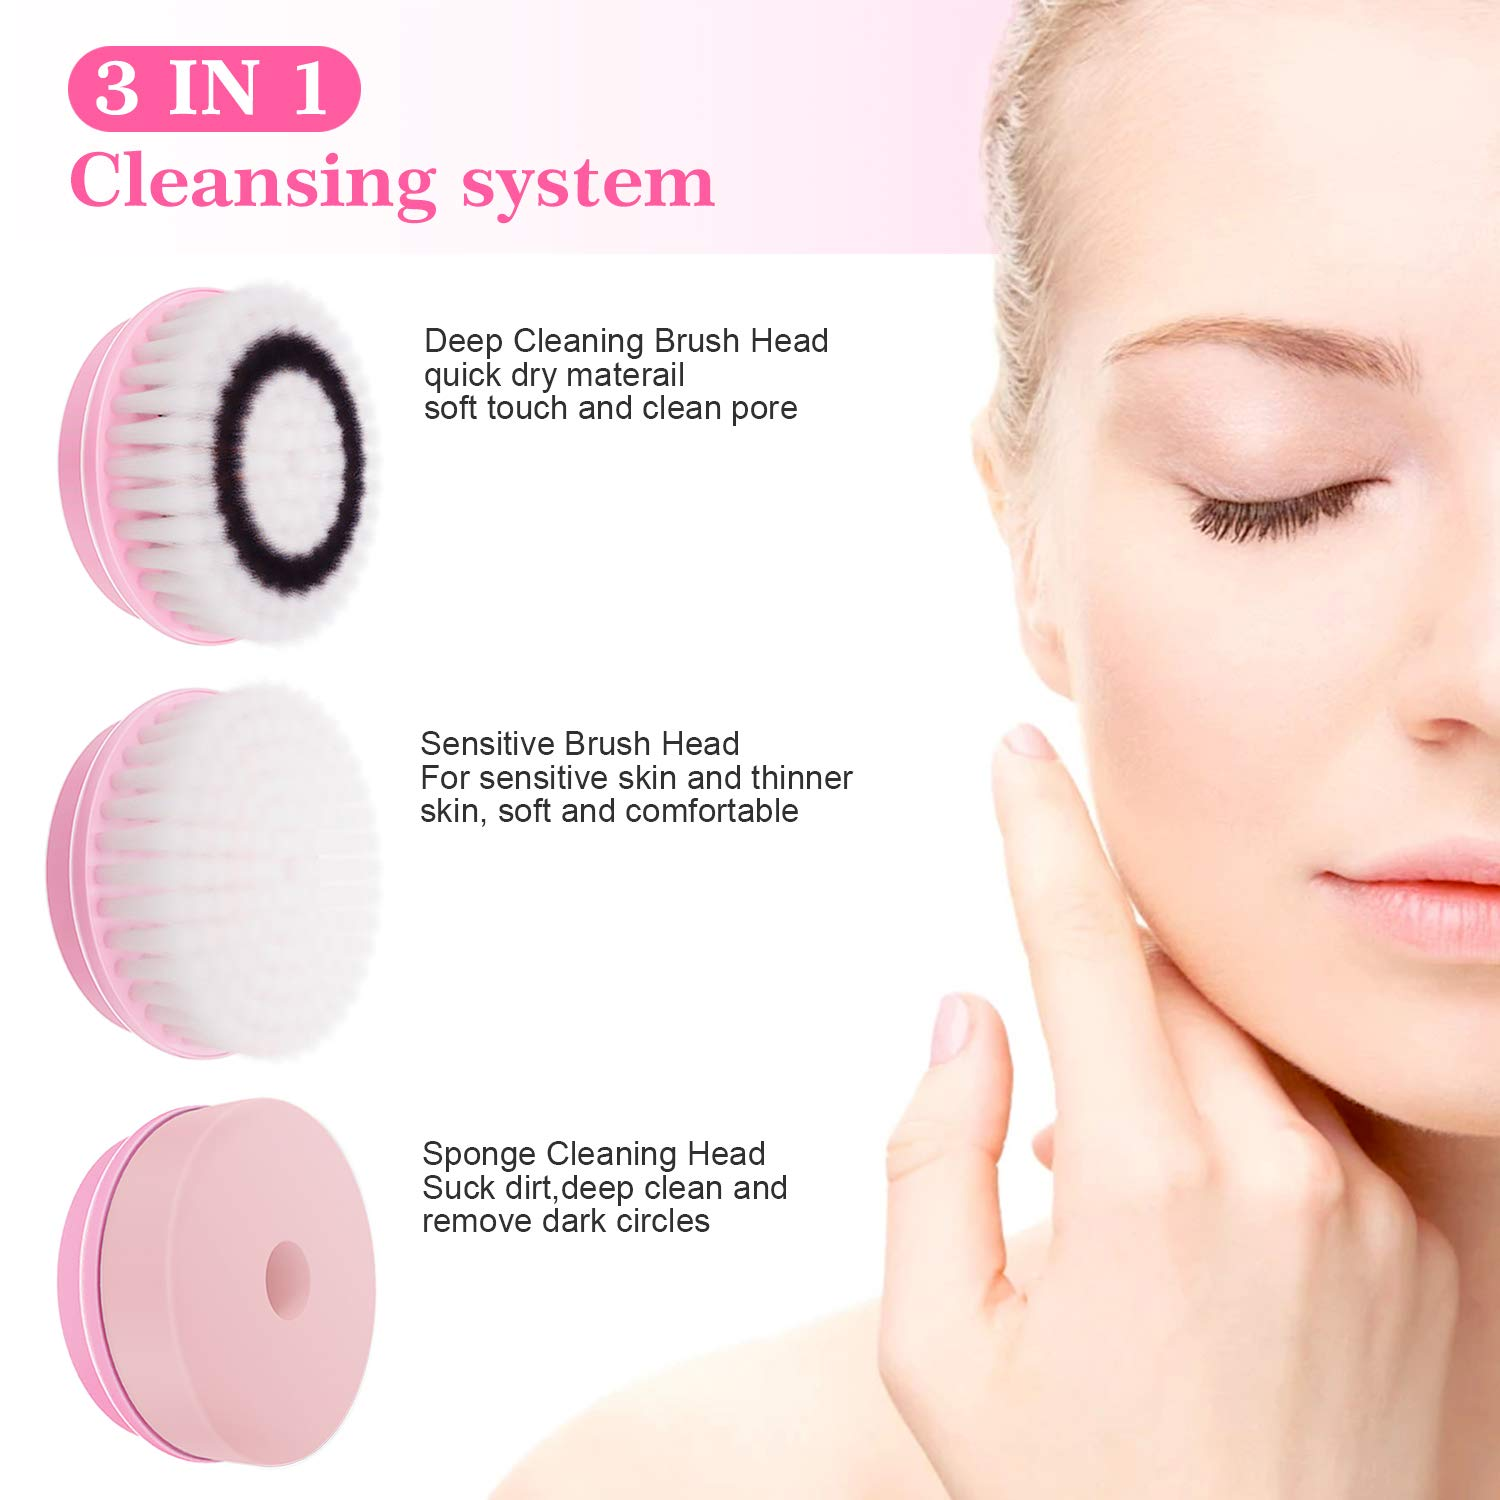 Electirc Facial Cleansing Brush Spin Face Brush, 2 Speed Waterproof Facial Brush